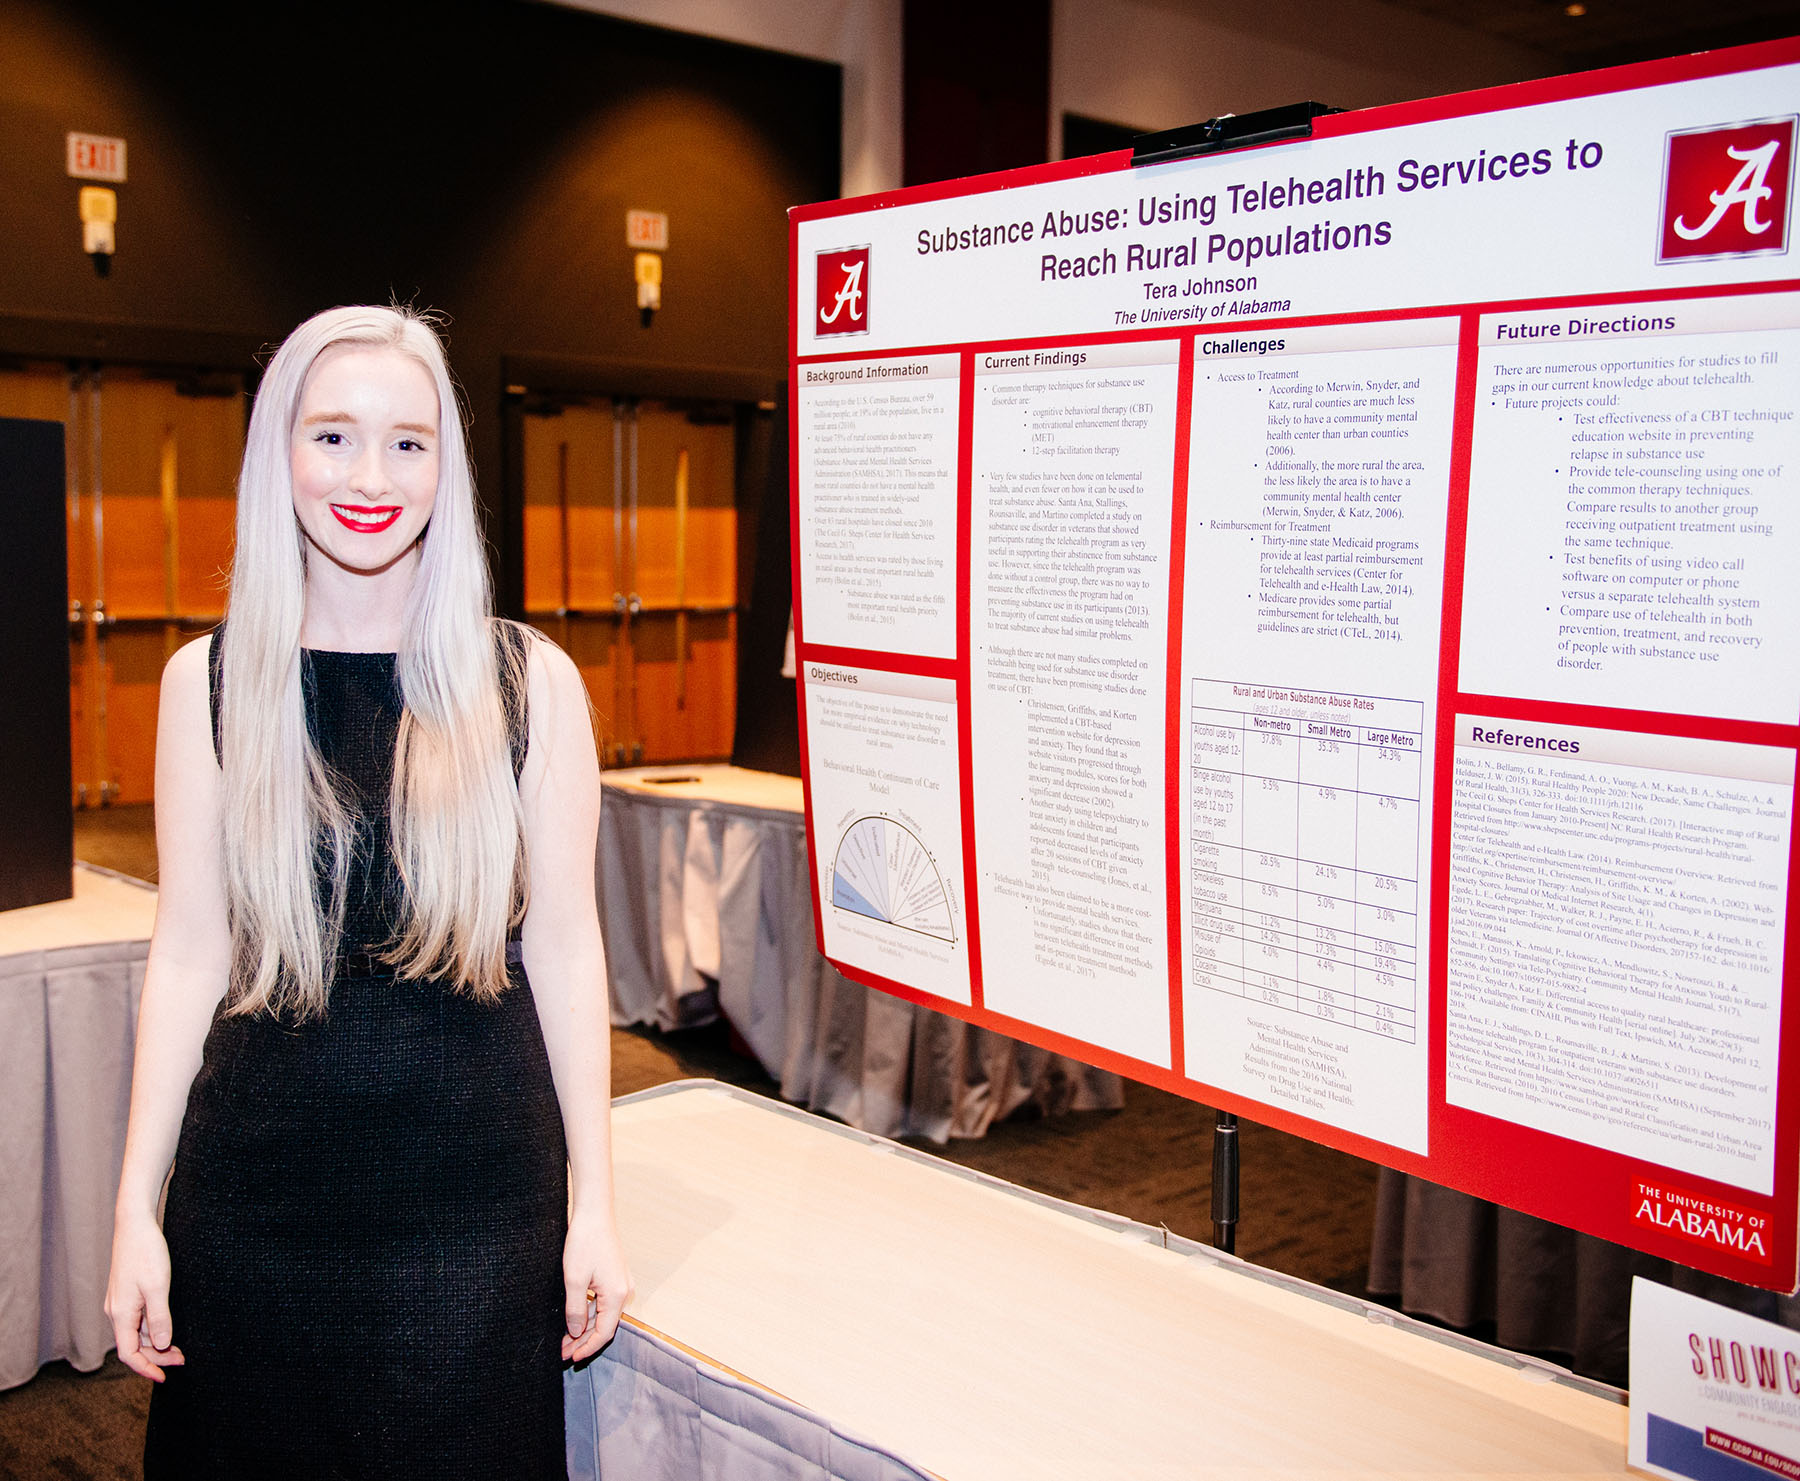 Tera Johnson displays her poster about using technology to reach rural patients.